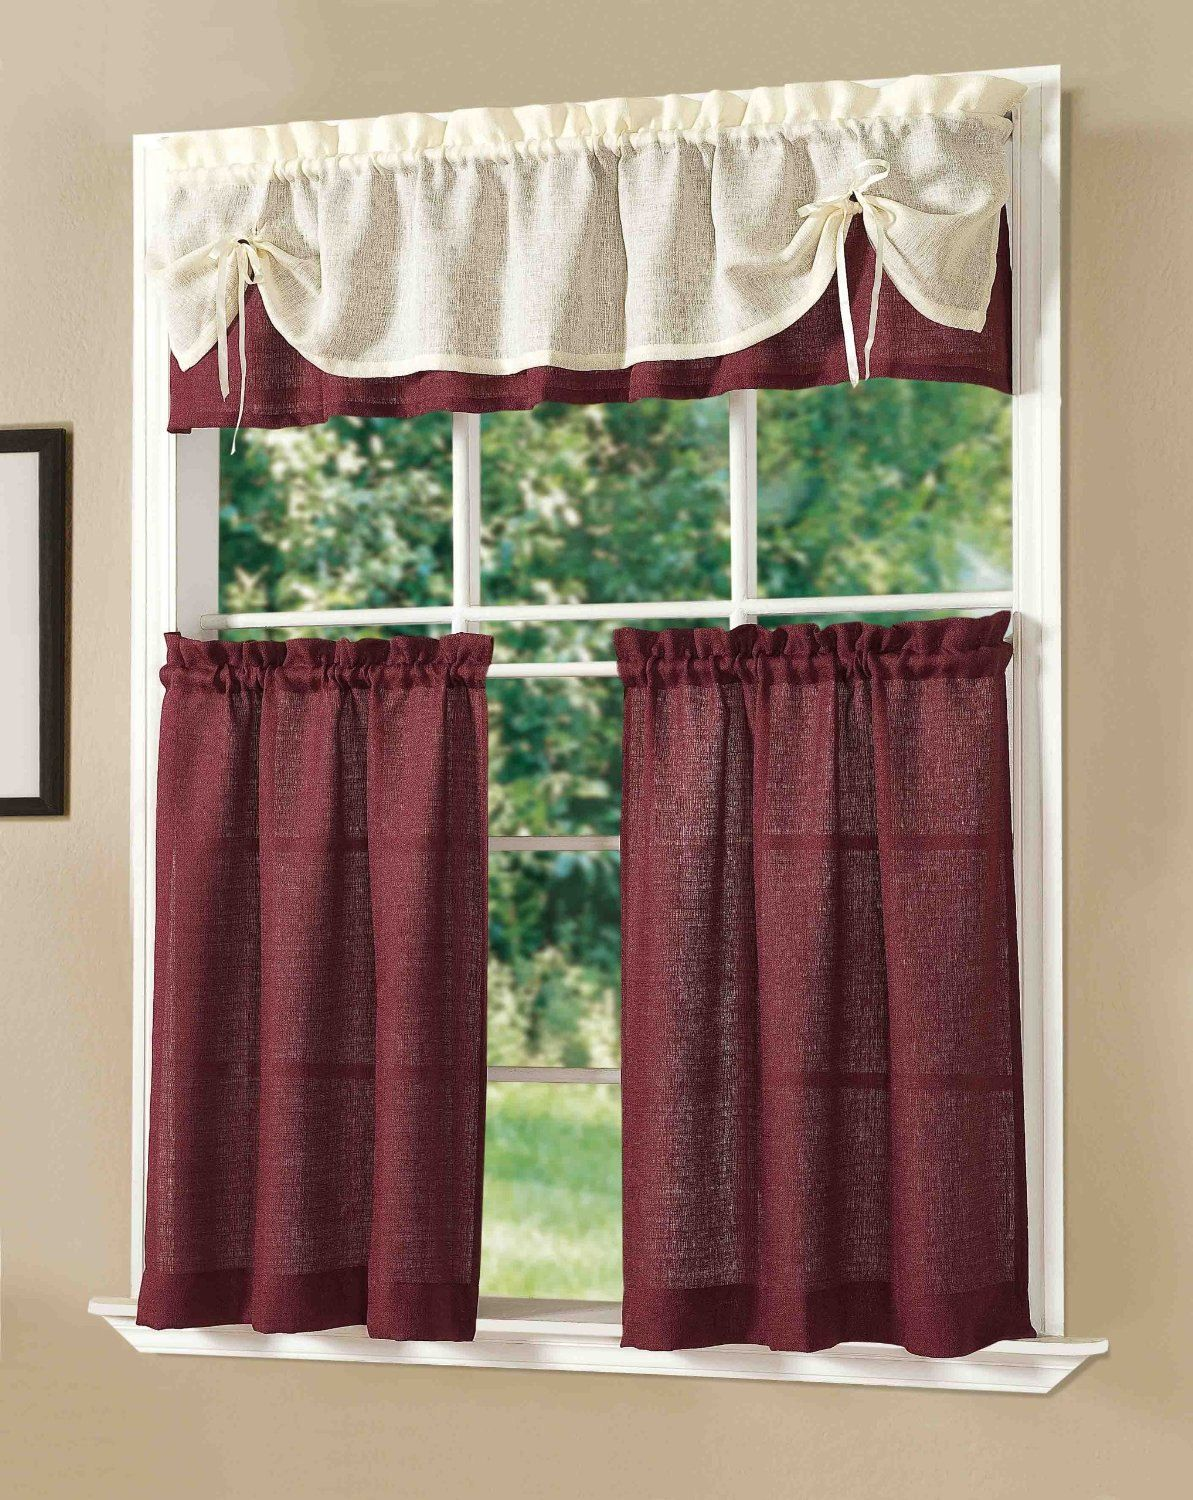 Sunrise Kitchen Curtain Set by DaintyHome on Etsy  Dainty